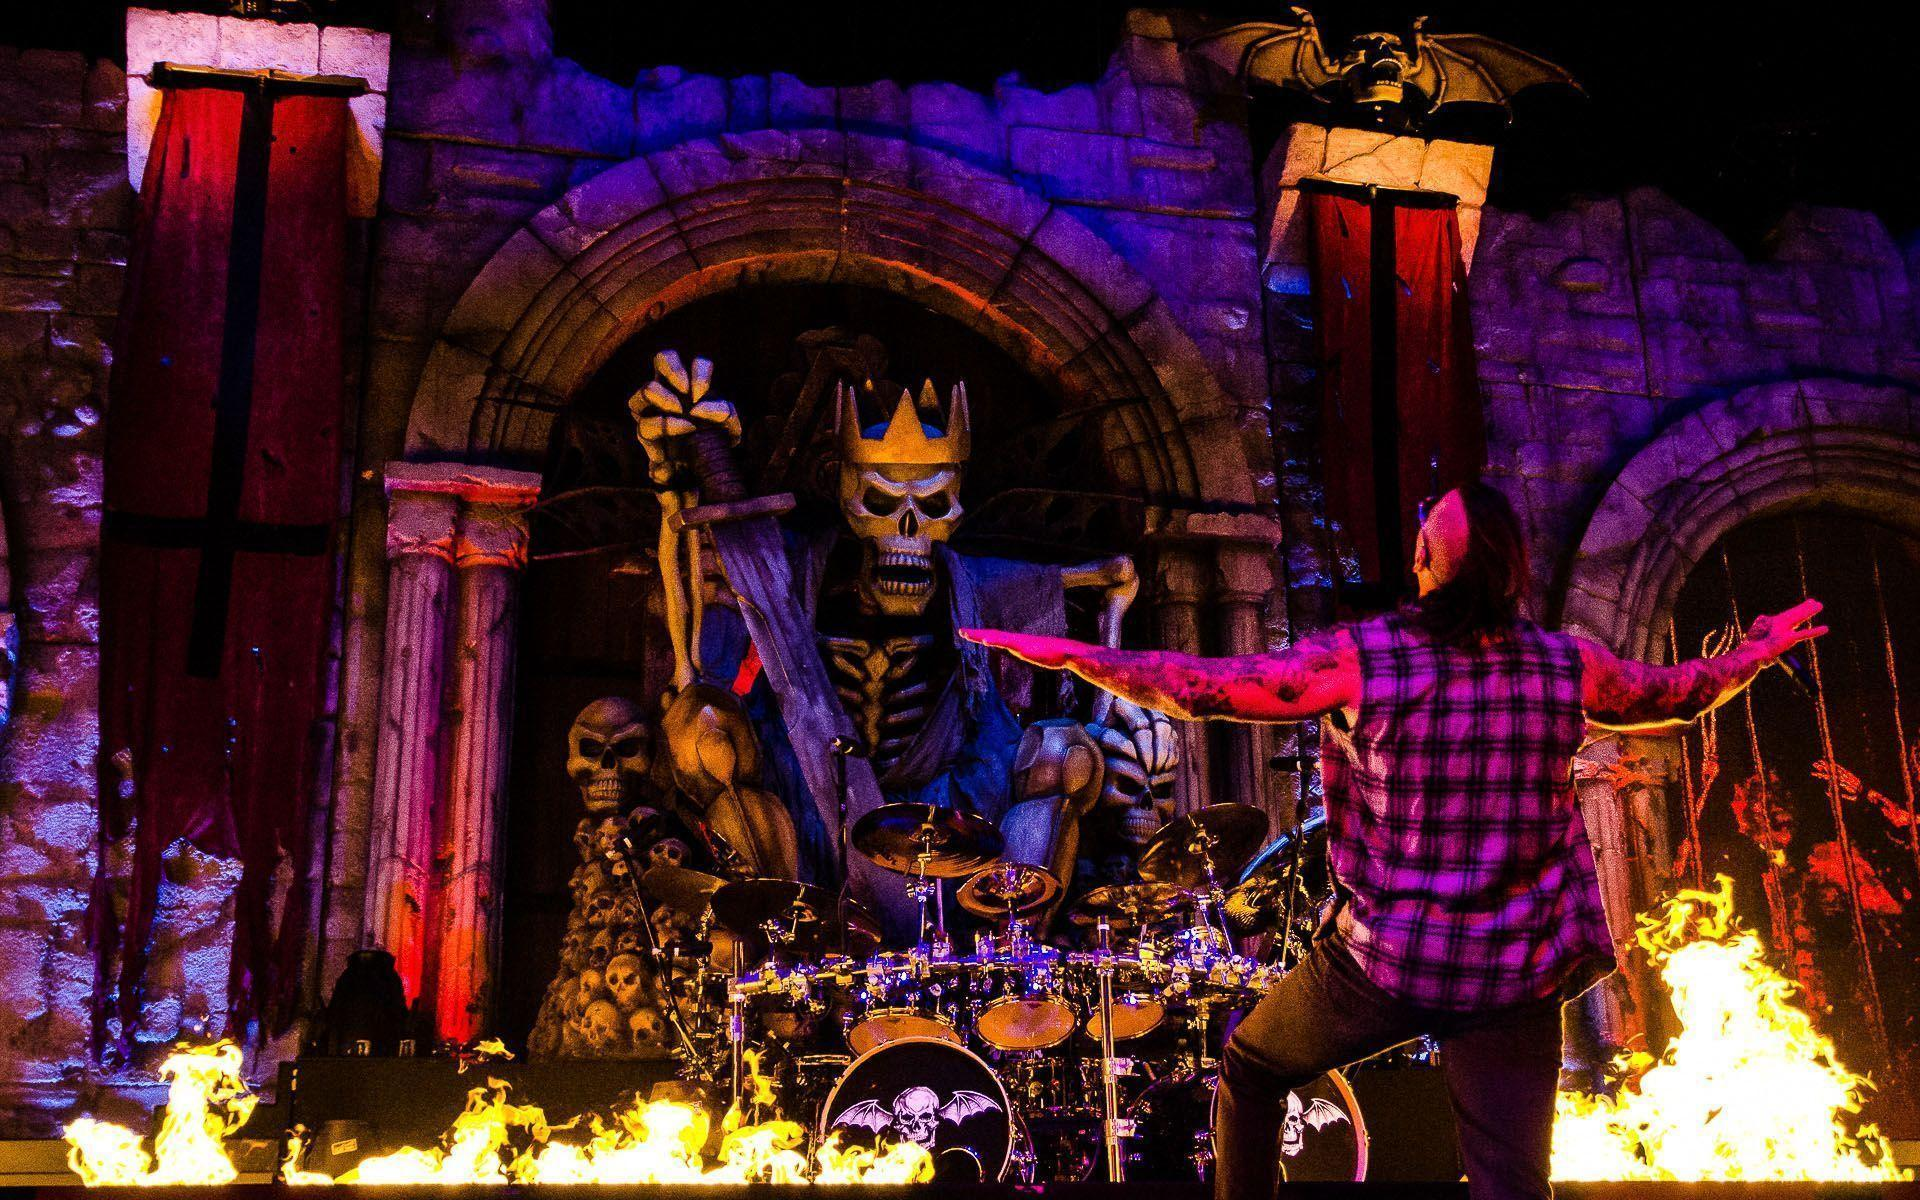 Avenged sevenfold 2015 wallpapers wallpaper cave avenged sevenfold wallpaper hd background 26835 wallpaper risewall voltagebd Choice Image